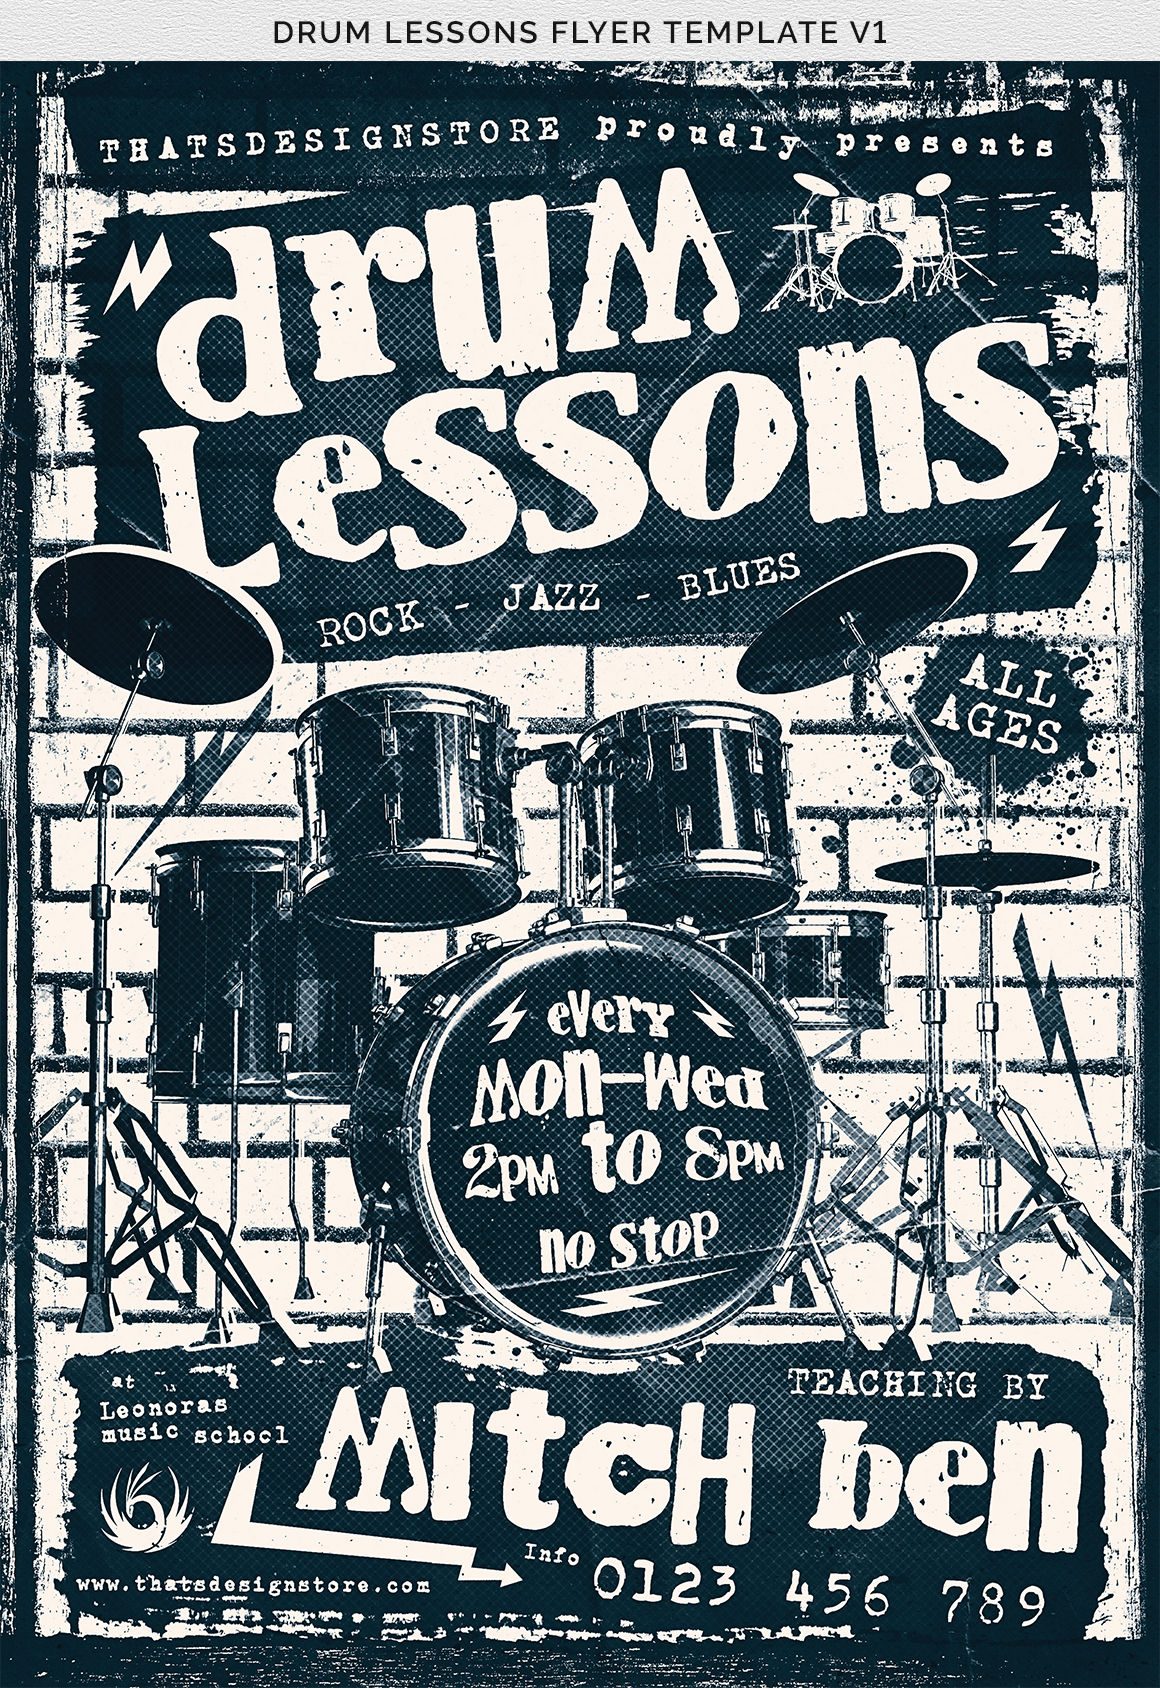 Drum Lessons Flyer Template V1 example image 13